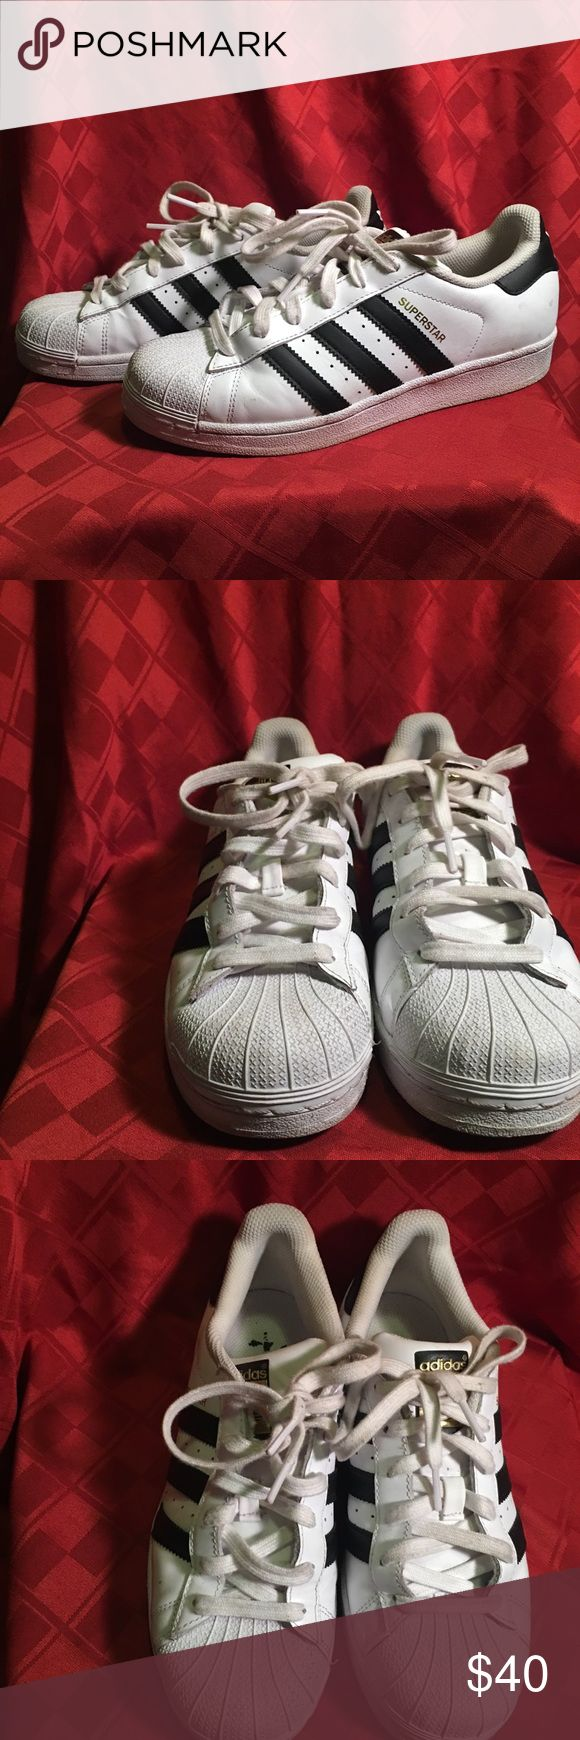 Adidas Superstars These superstars are in pretty good condition and don't have any scuffs or marks. The shoe laces can easily be cleaned and they would look brand new. They are kid shoes and are 6 1/2 but fit like an 8 in women shoes adidas Shoes Athletic Shoes